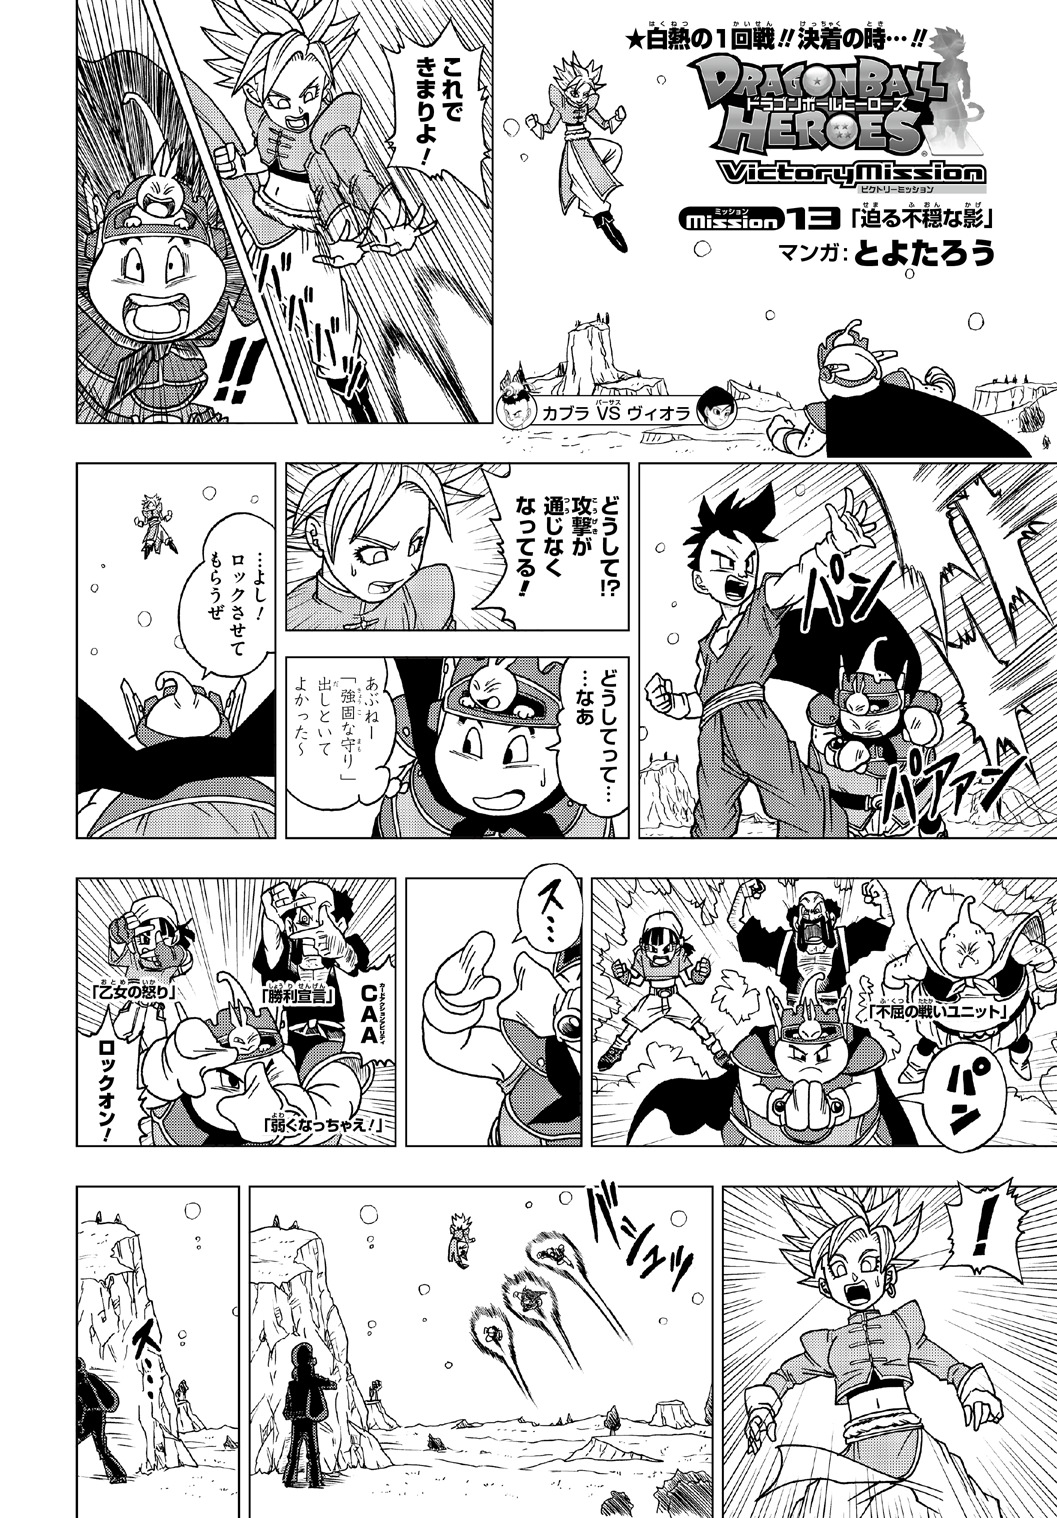 Dragon Ball Heroes Victory Mission Chapitre 013